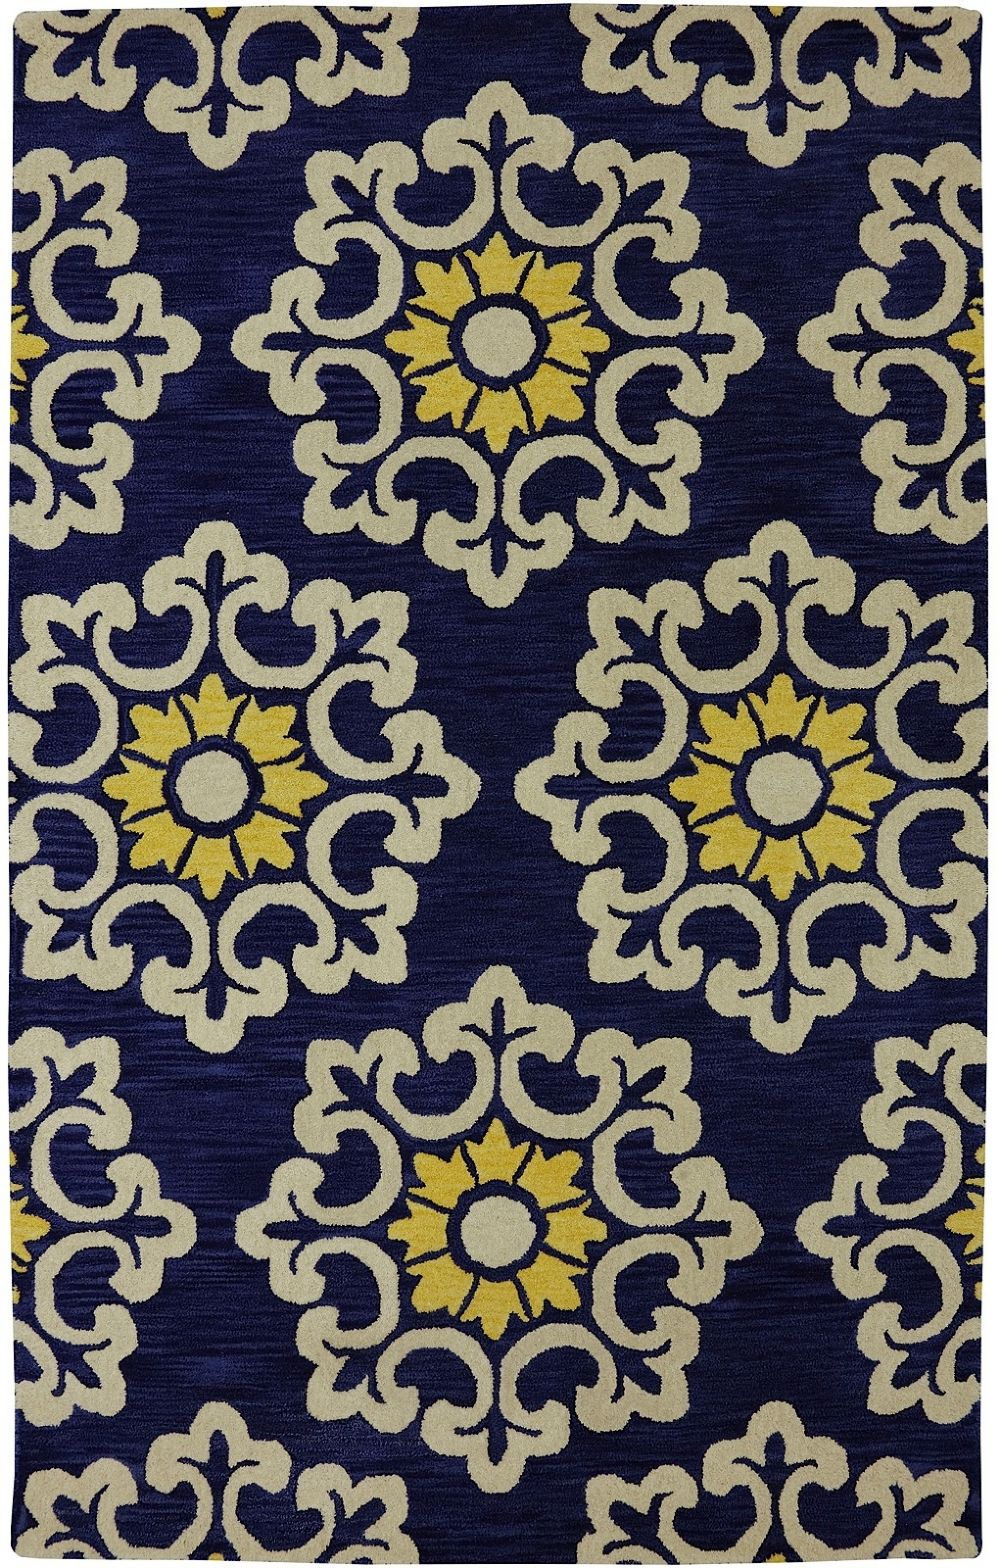 karastan charisma transitional area rug collection